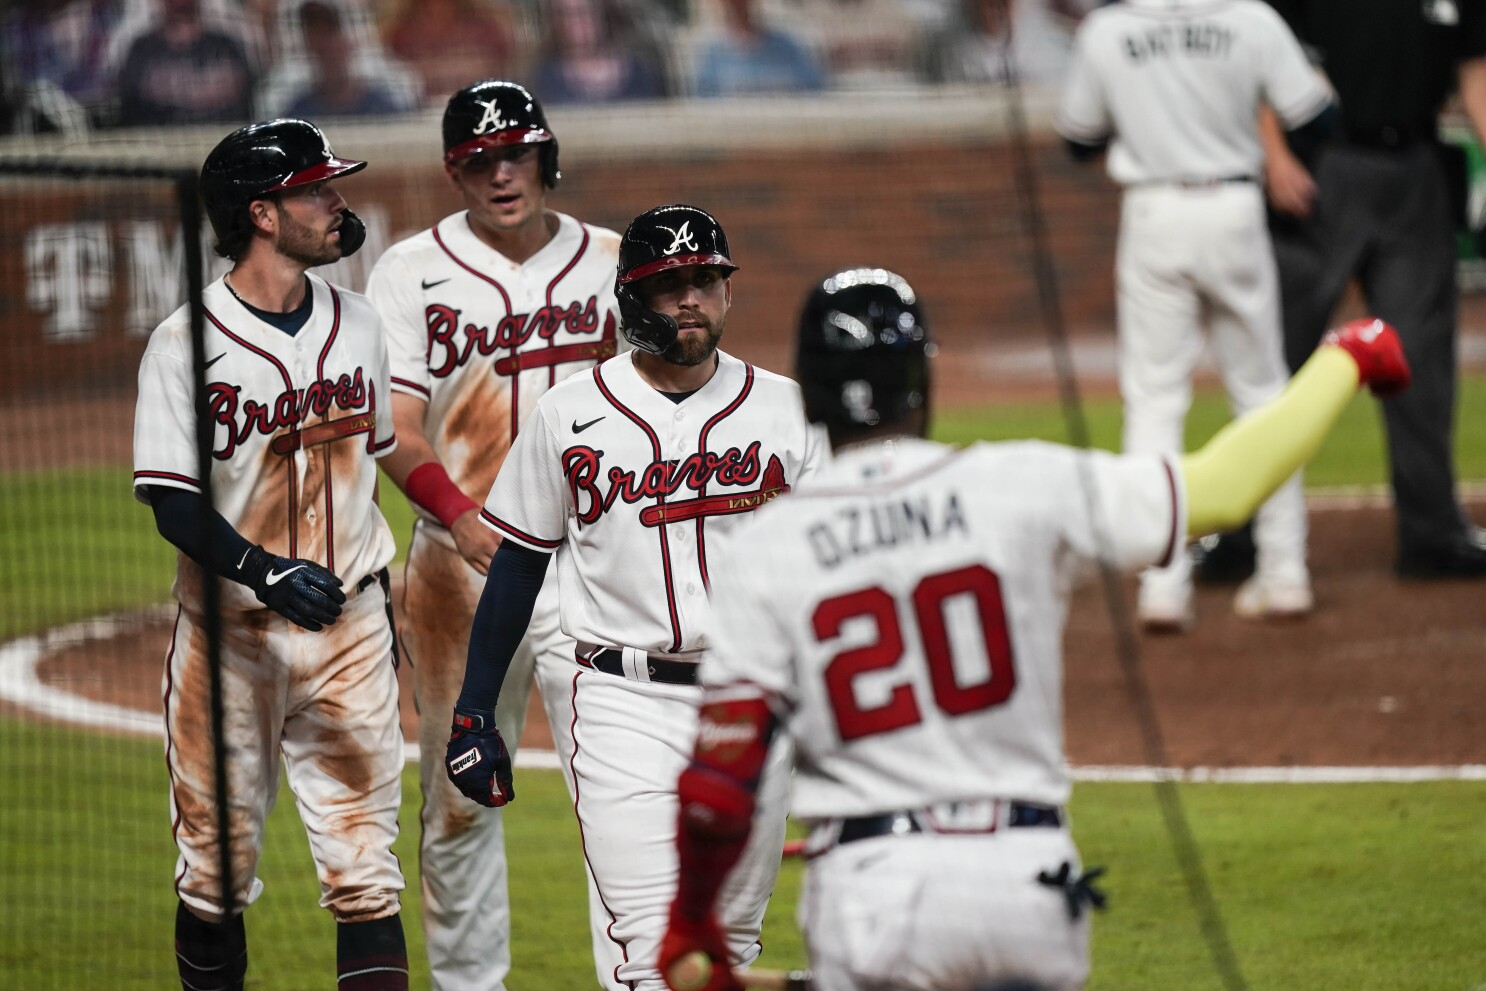 Braves Score Franchise Record 29 Runs In Romp Of Marlins The San Diego Union Tribune